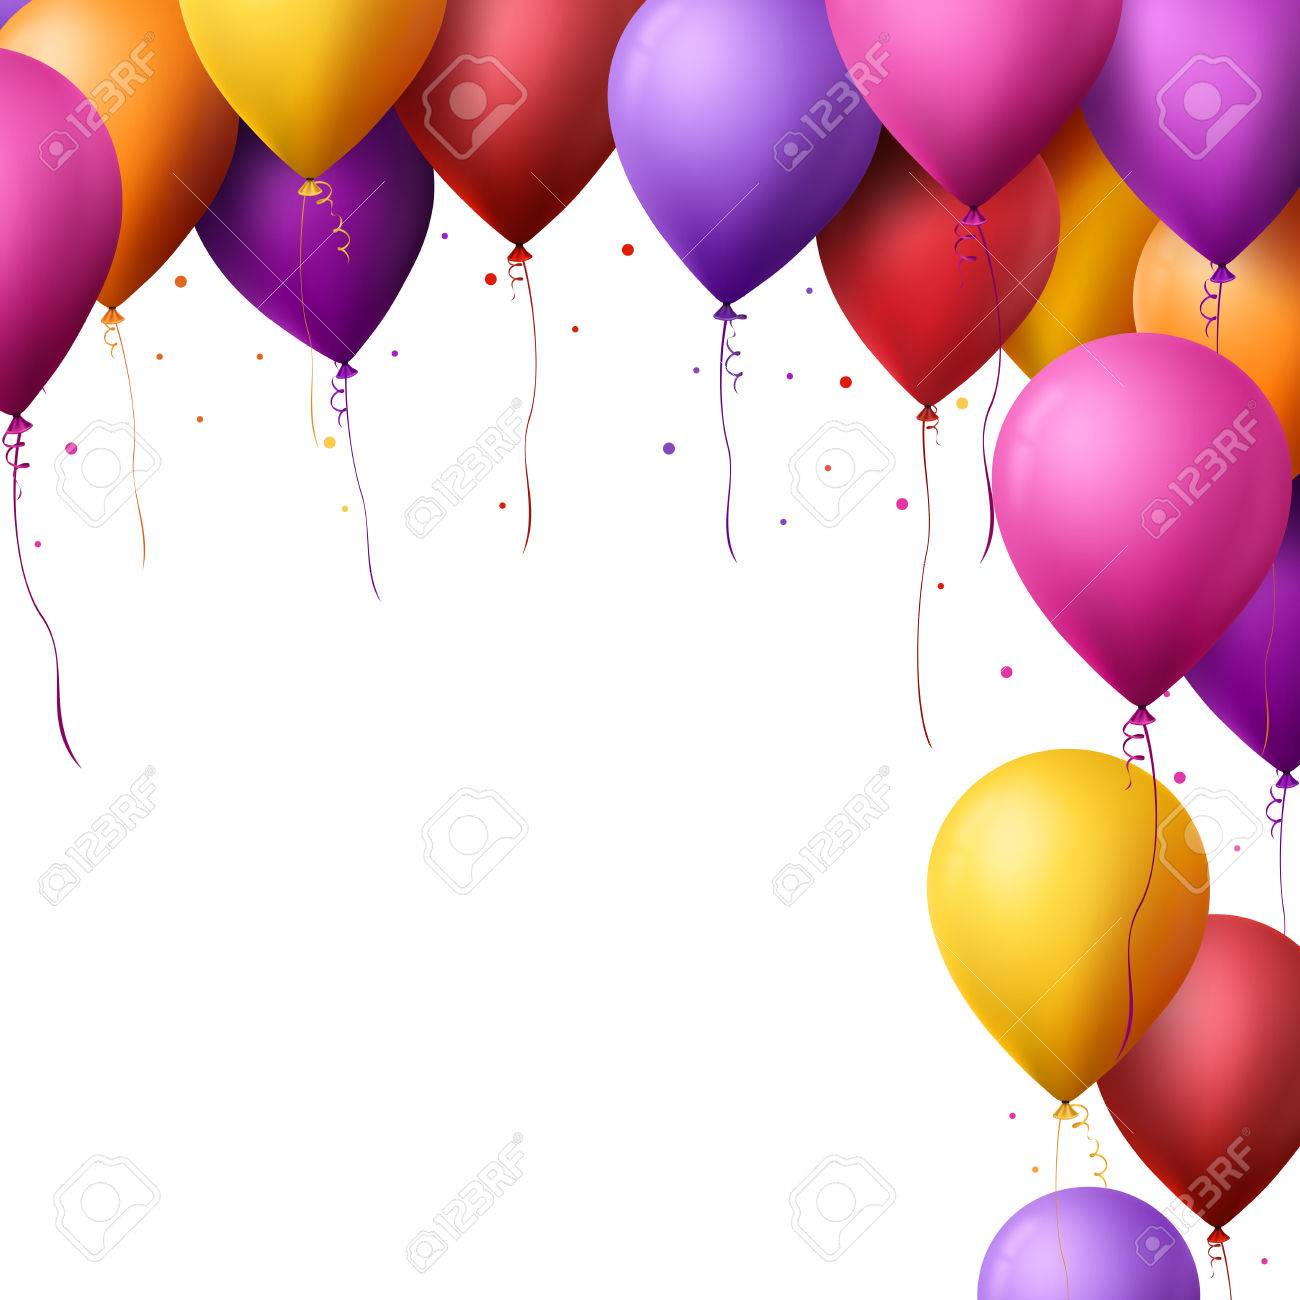 3d Realistic Colorful Happy Birthday Balloons Flying for Party and Celebrations With Space for Message Isolated in White Background. Vector Illustration - 47934304